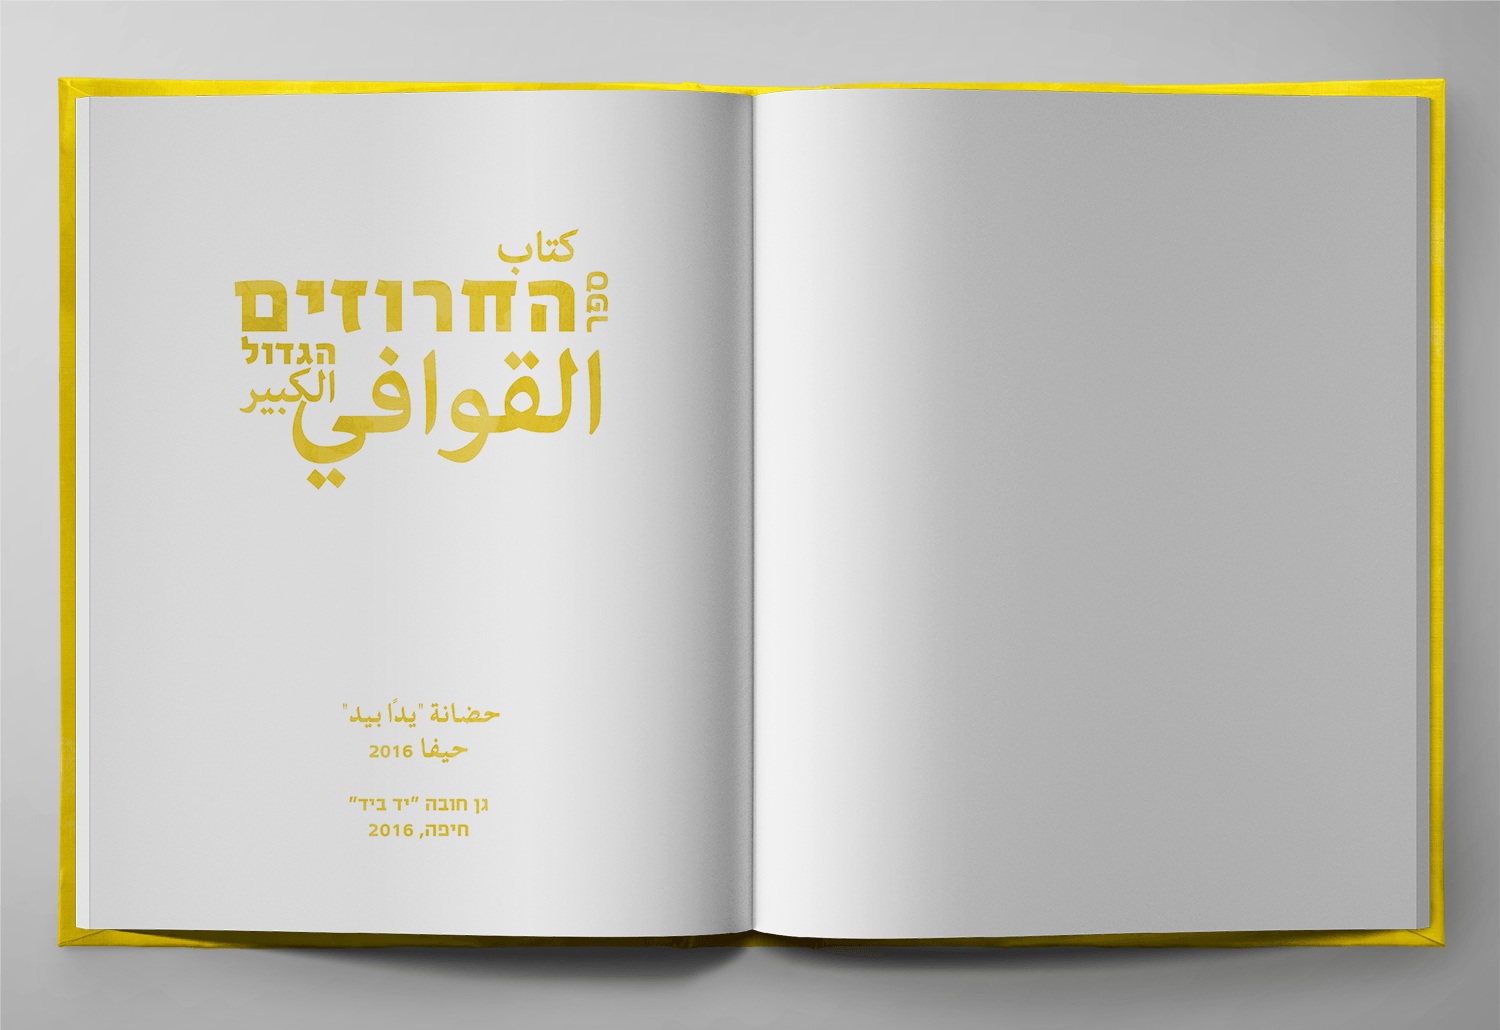 http://bigeyes.co.il/wp-content/uploads/2019/07/shtuzim-book-1.png